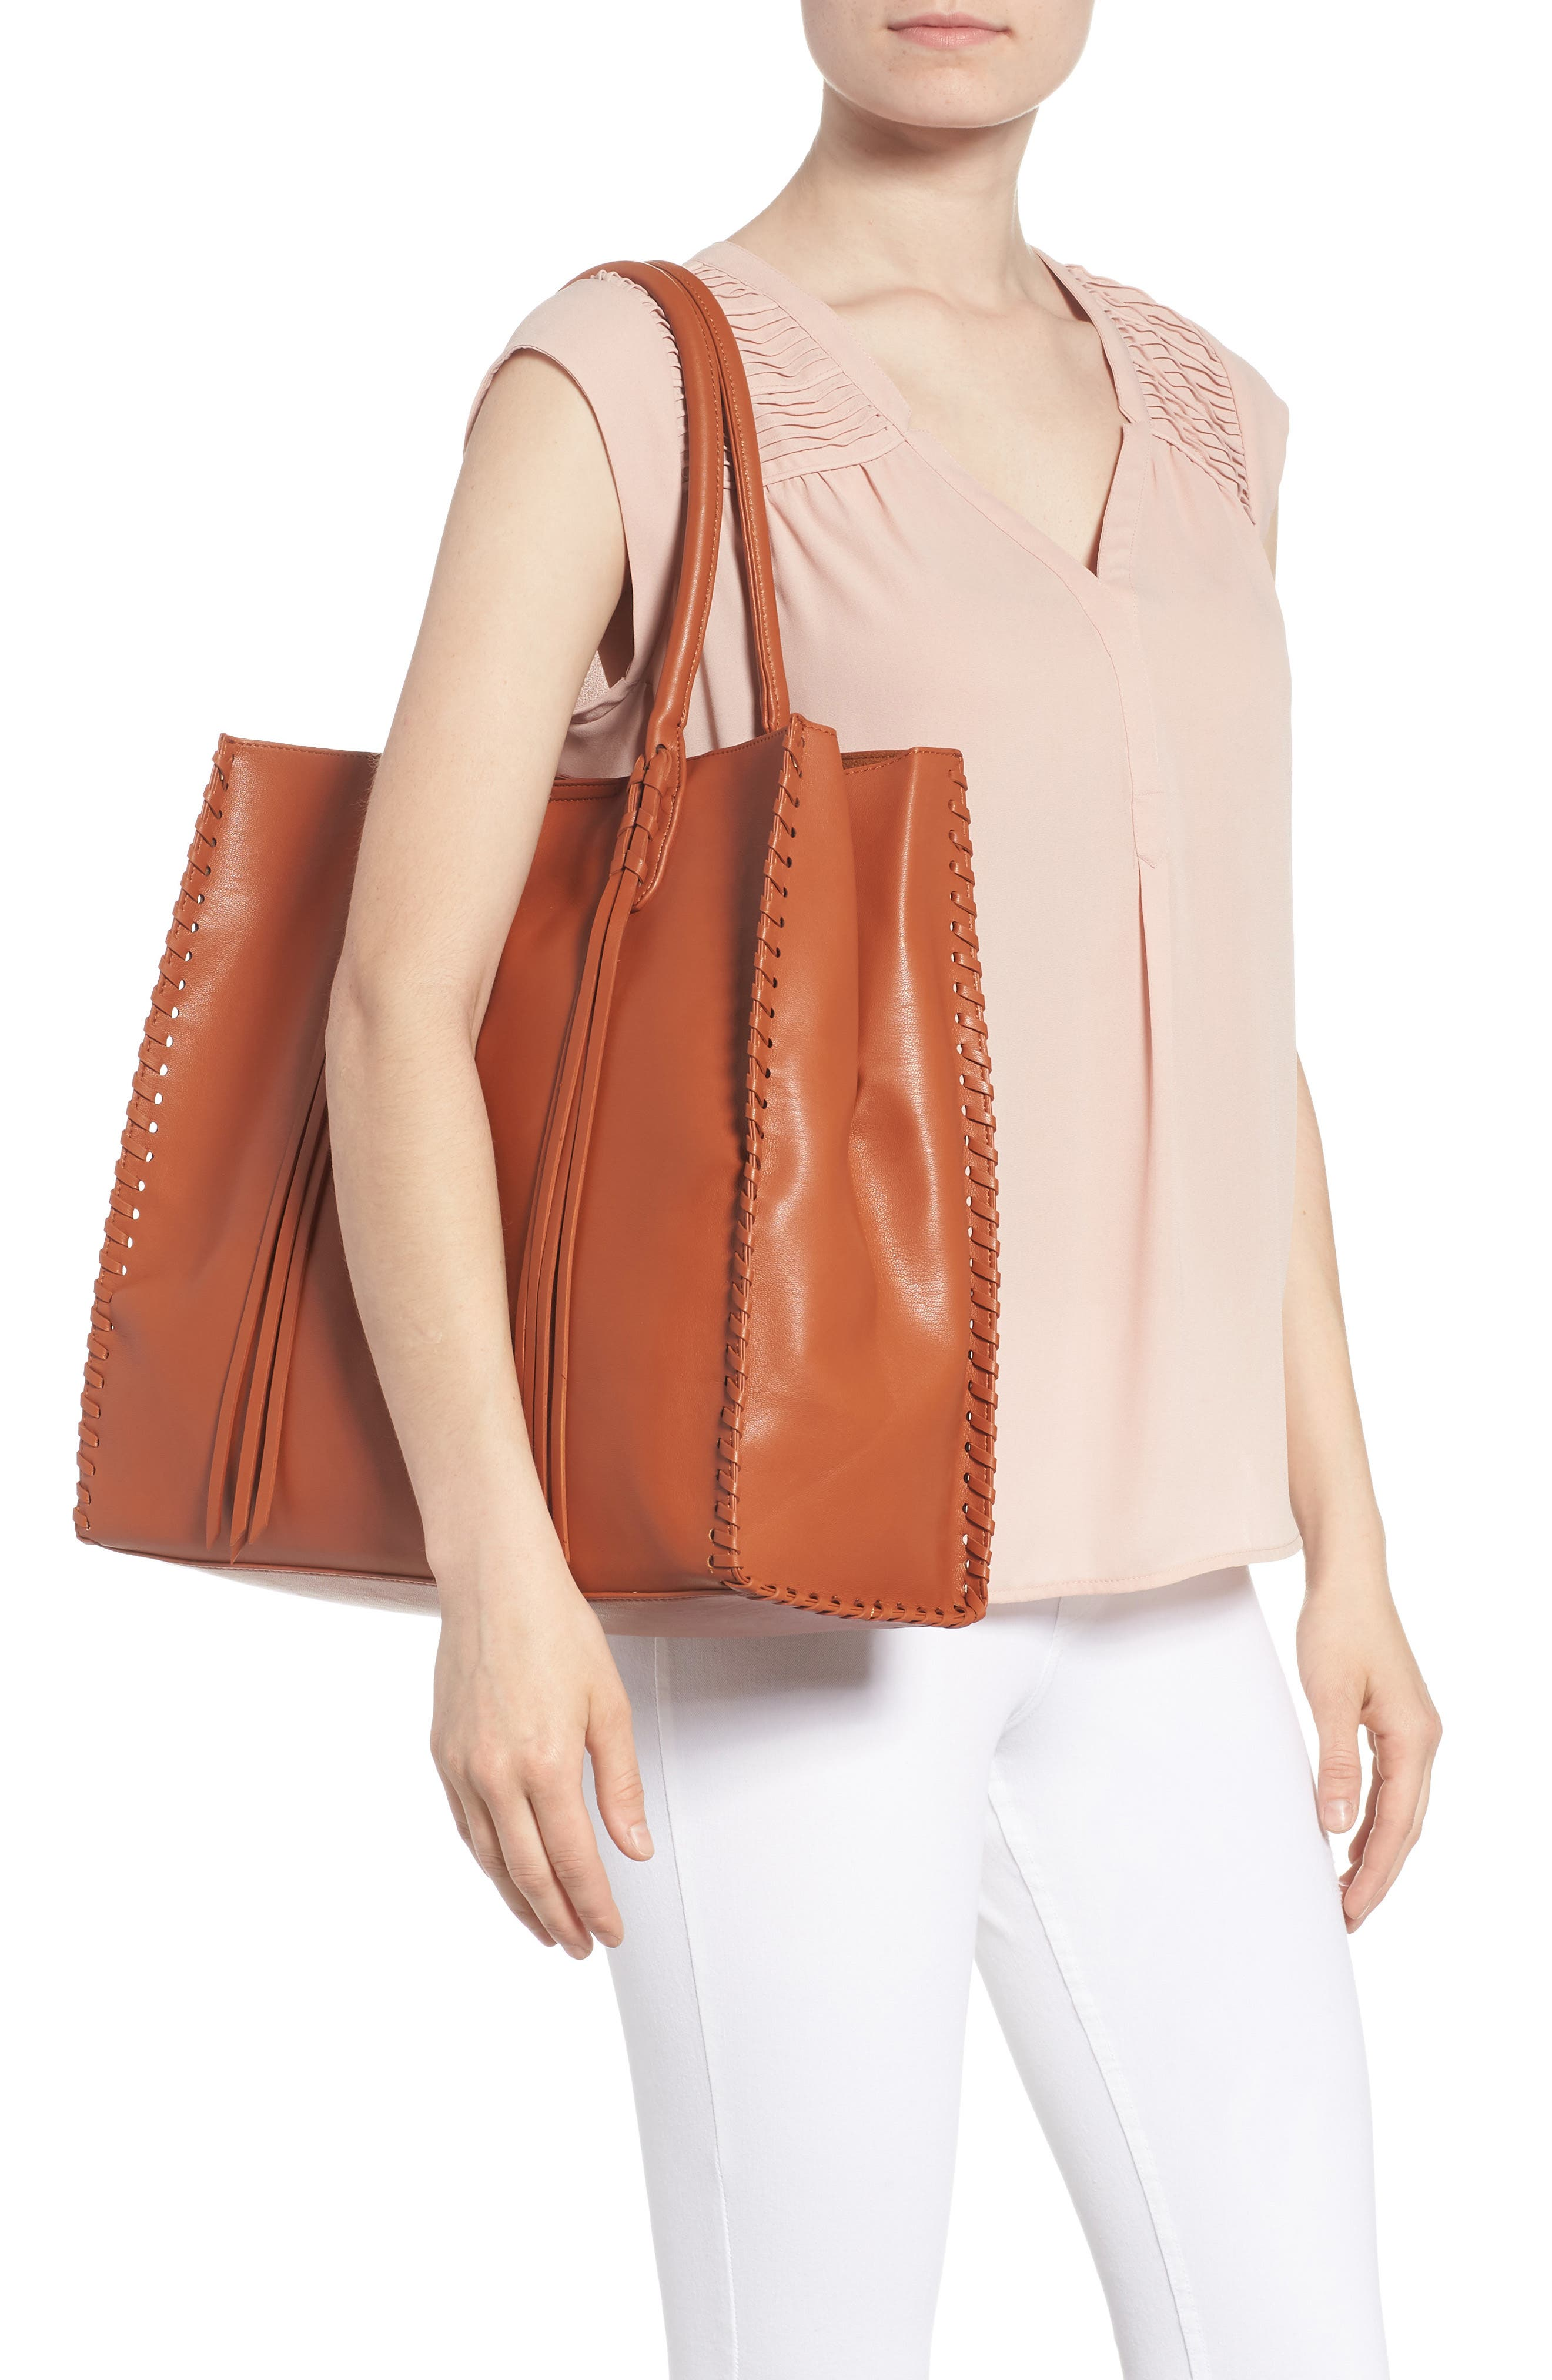 Cadence Faux Leather Whipstitch Tote,                             Alternate thumbnail 2, color,                             200